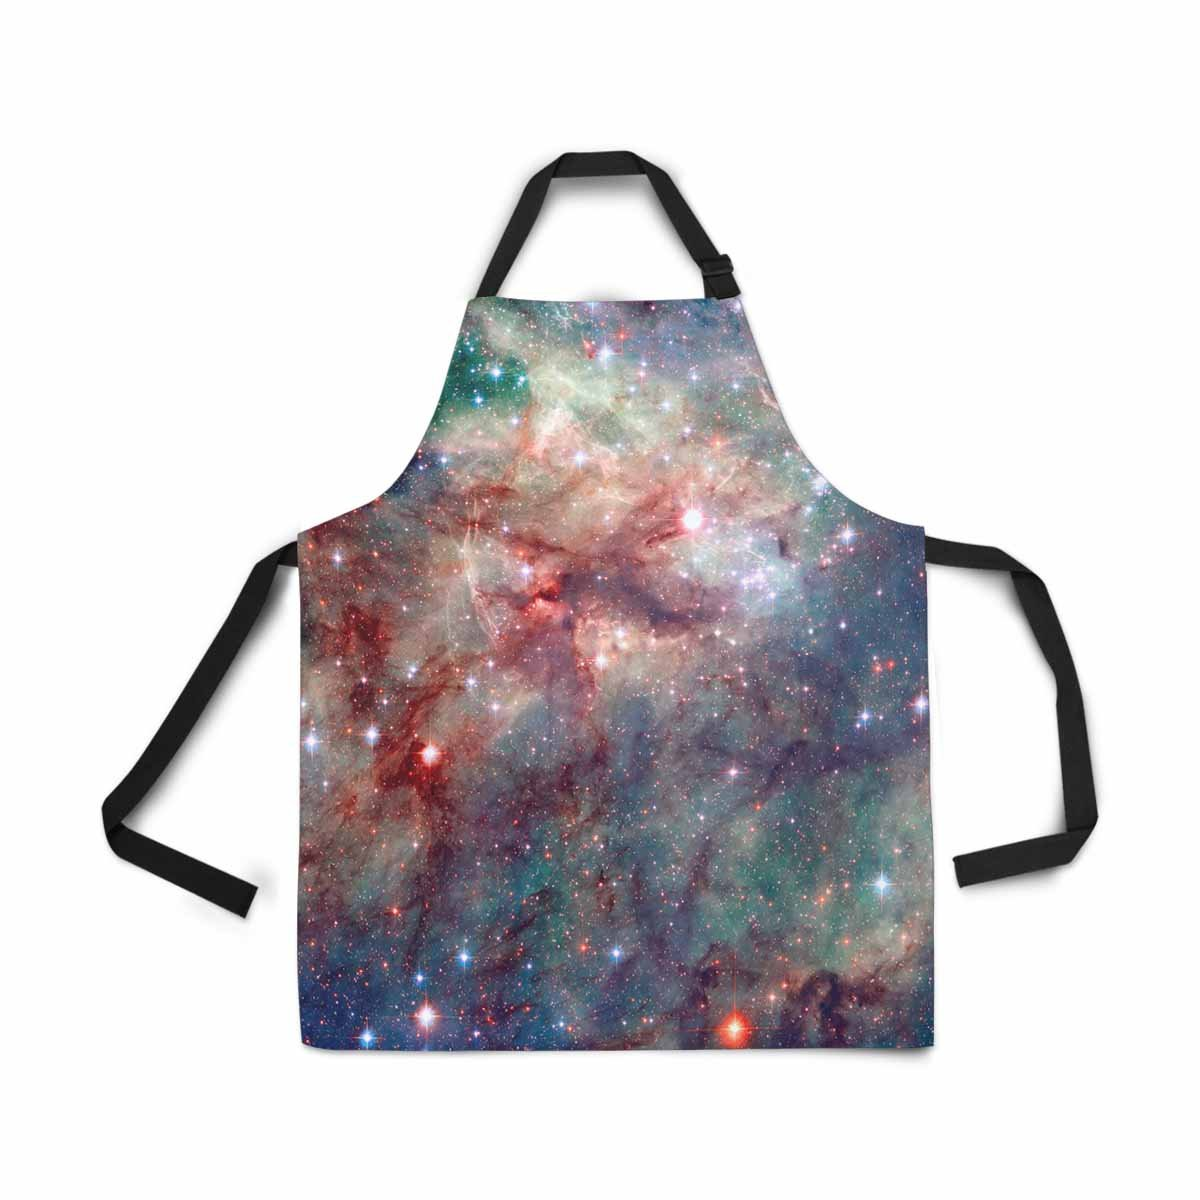 InterestPrint Tarantula Nebula Cloud Galaxy Adjustable Bib Apron for Women Men Girls Chef with Pockets, Novelty Kitchen Apron for Cooking Baking Gardening Pet Grooming Cleaning